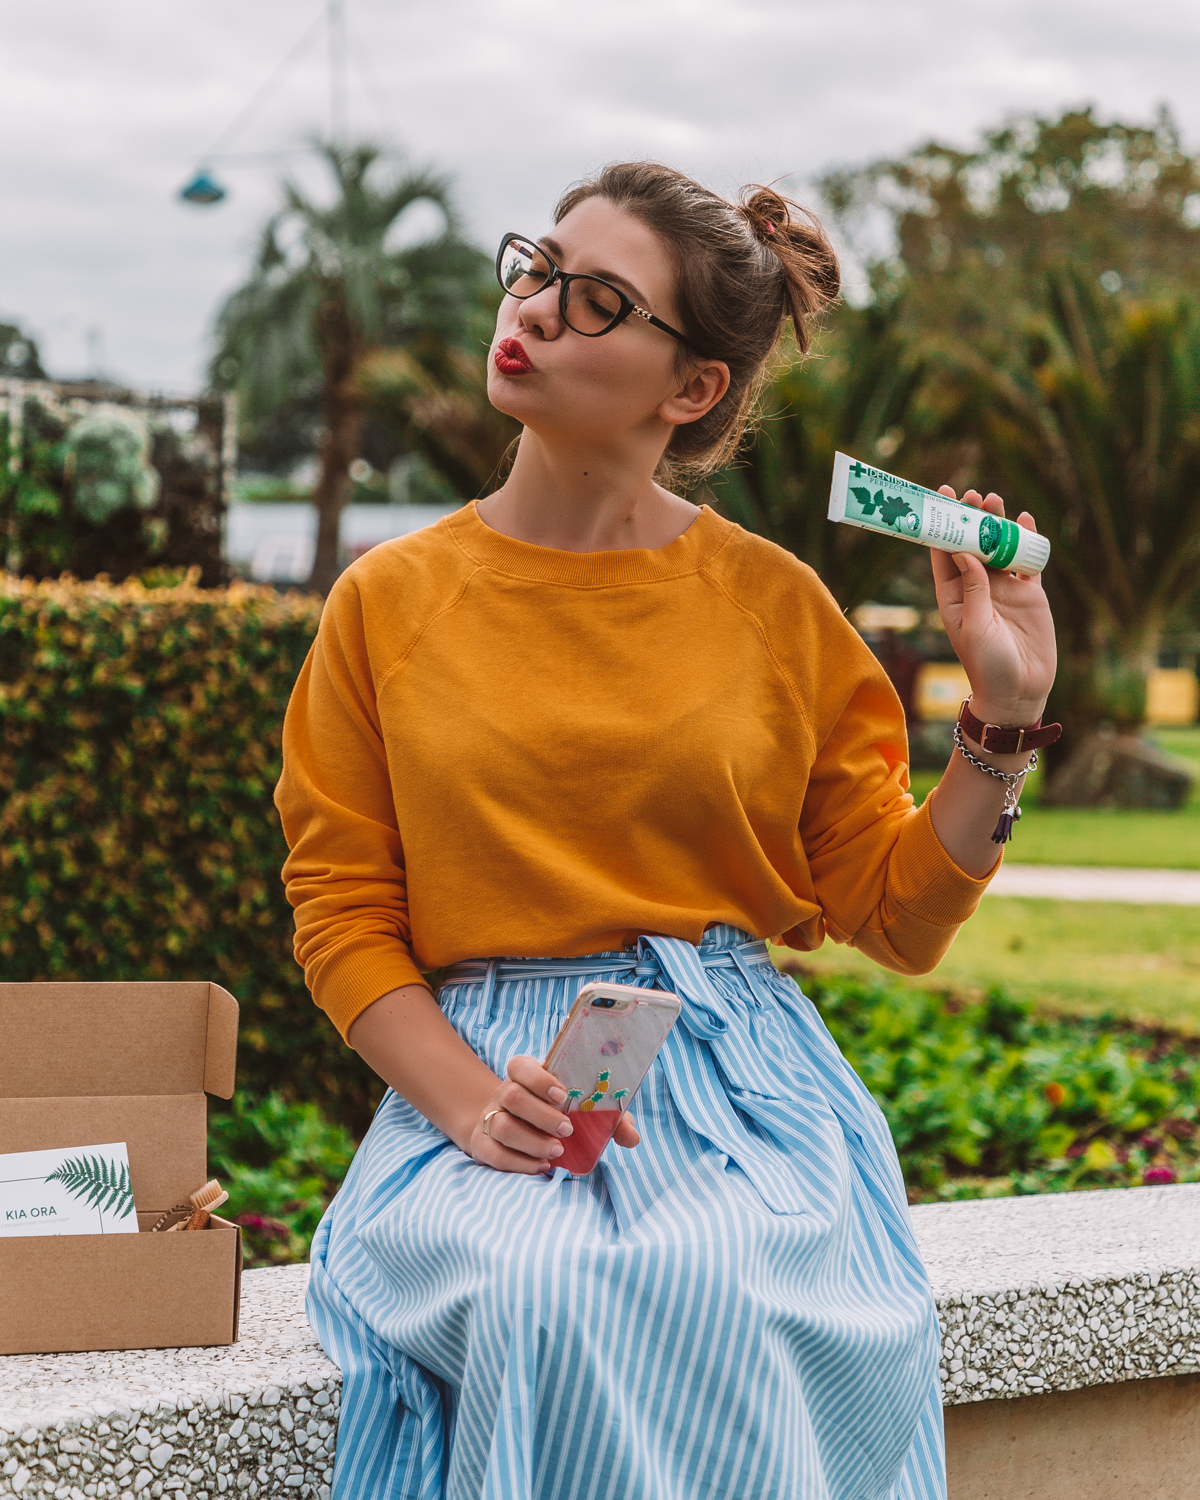 thestylejungle_New_Zealand_toothpaste_beauty_review_Dentiste